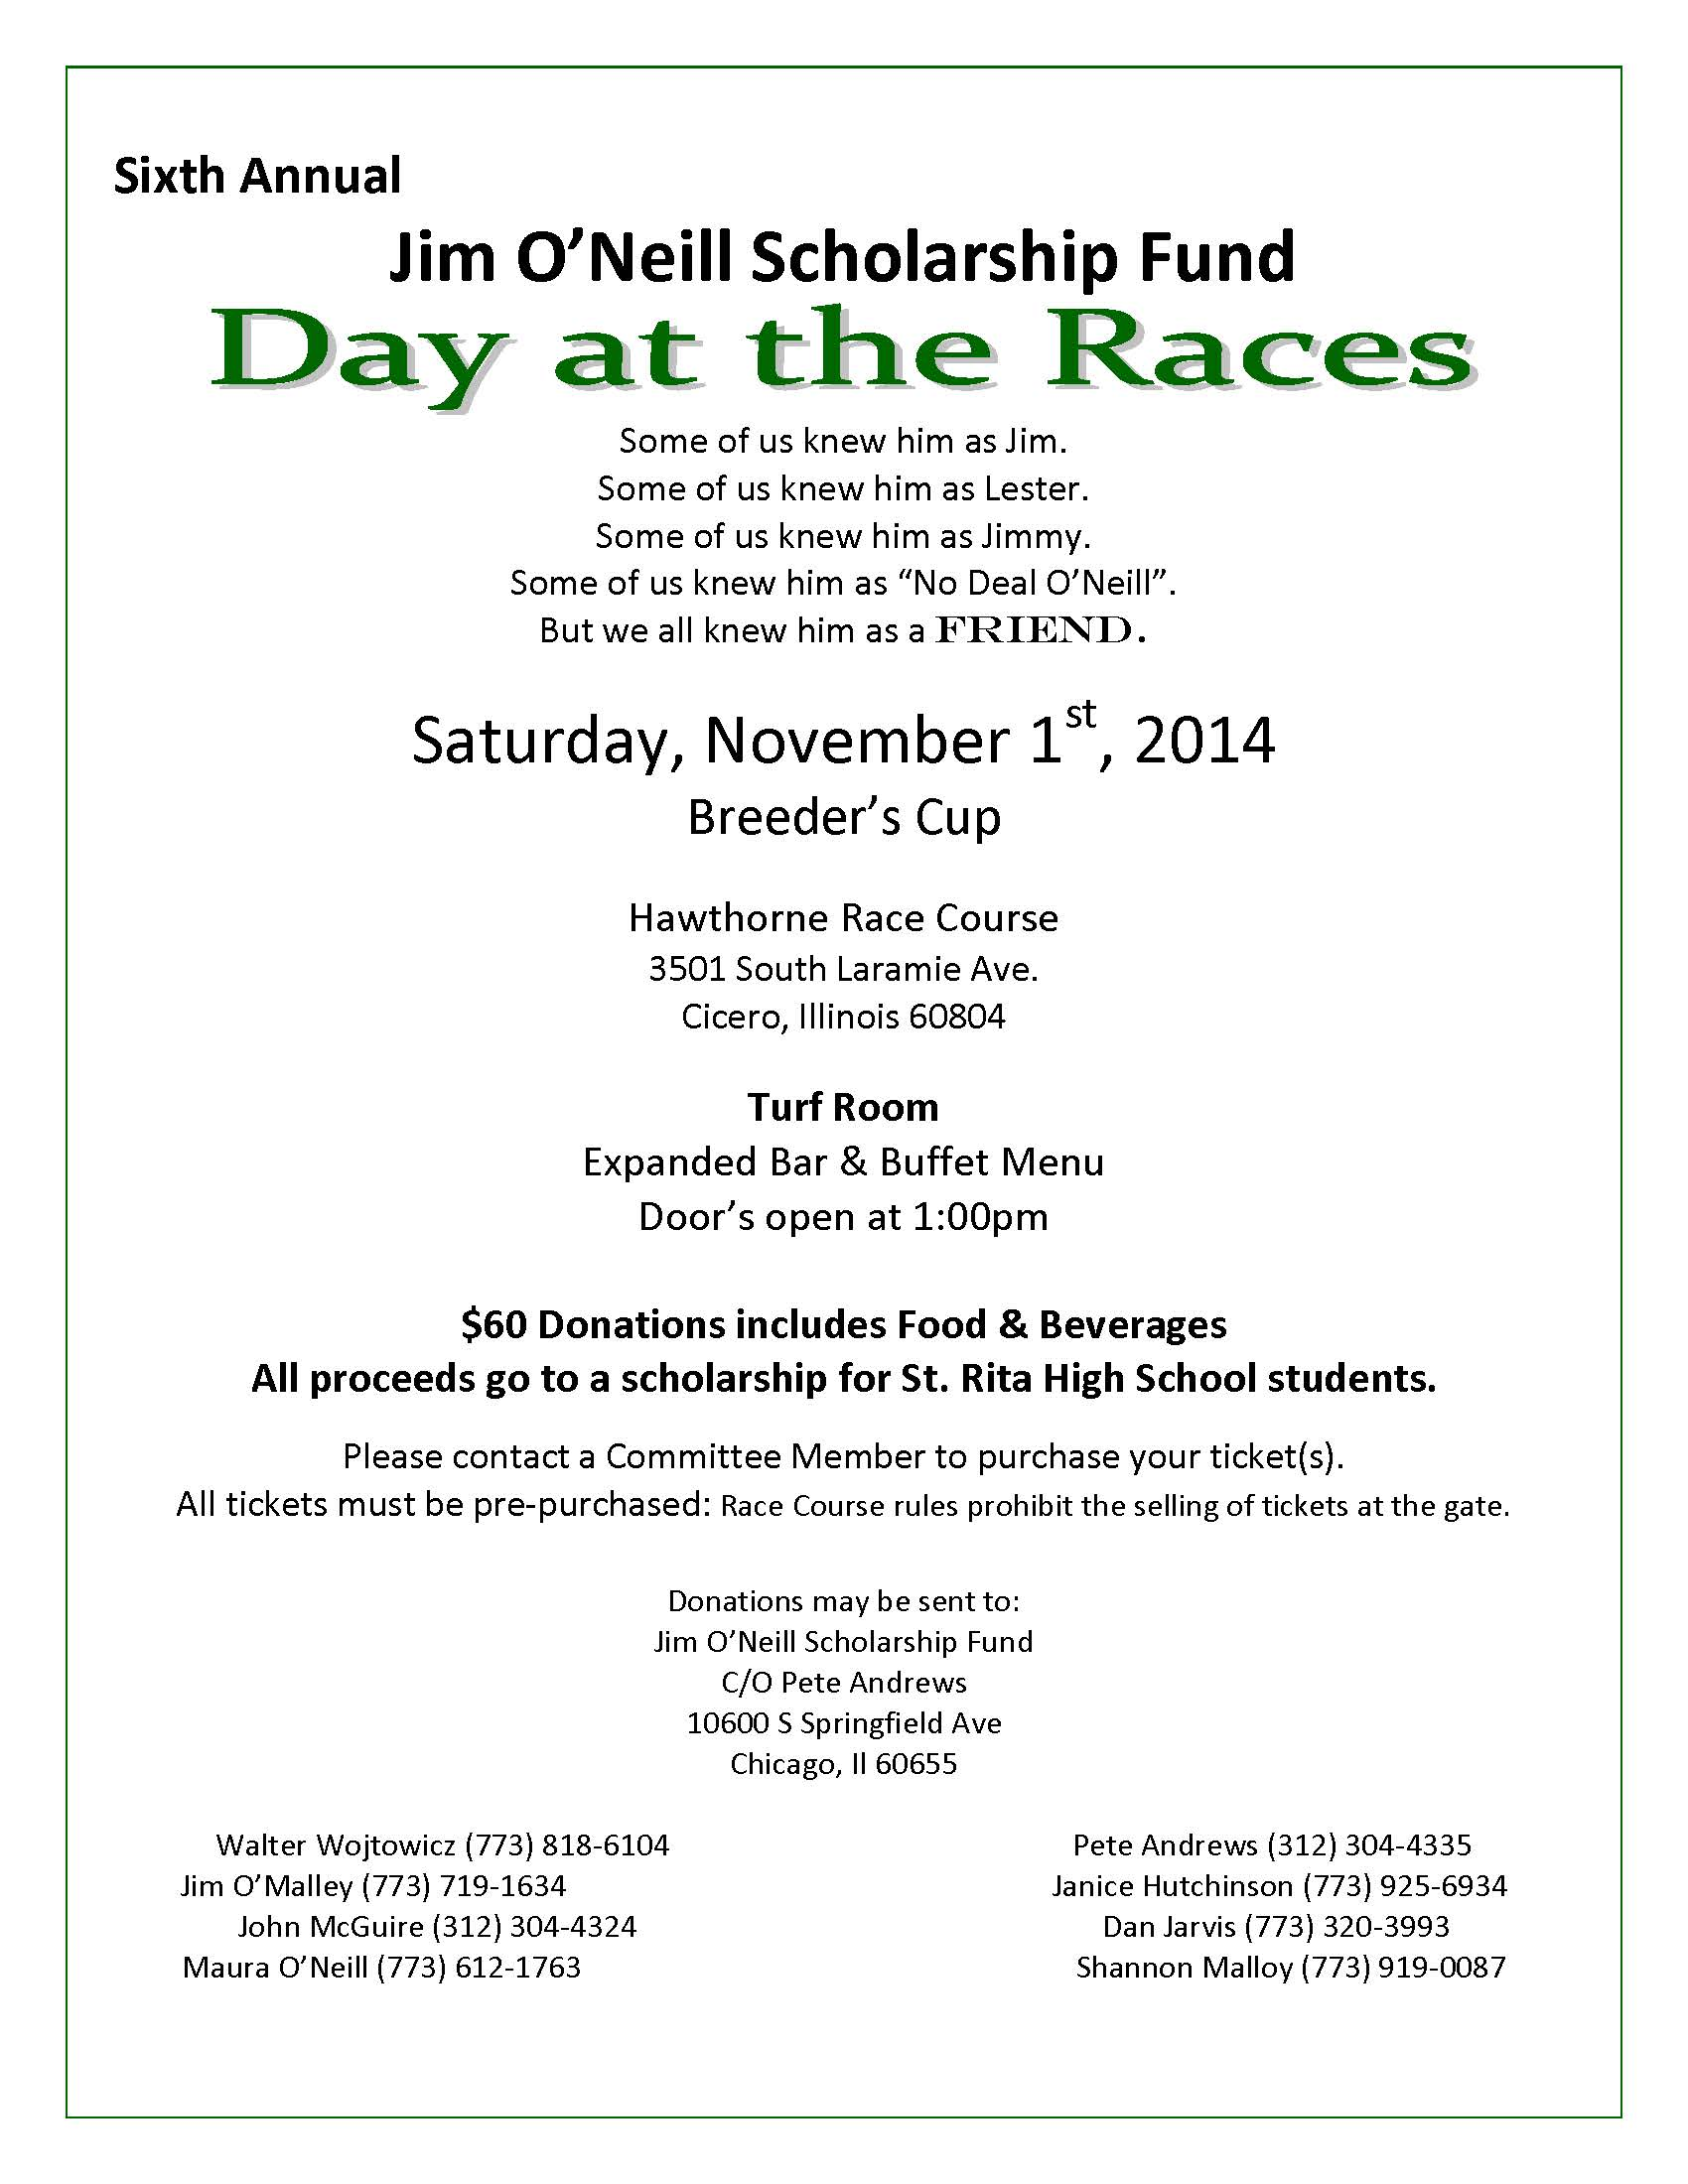 Jim_O'Neill_Day_at_the_Races._11.1.14_Page_1